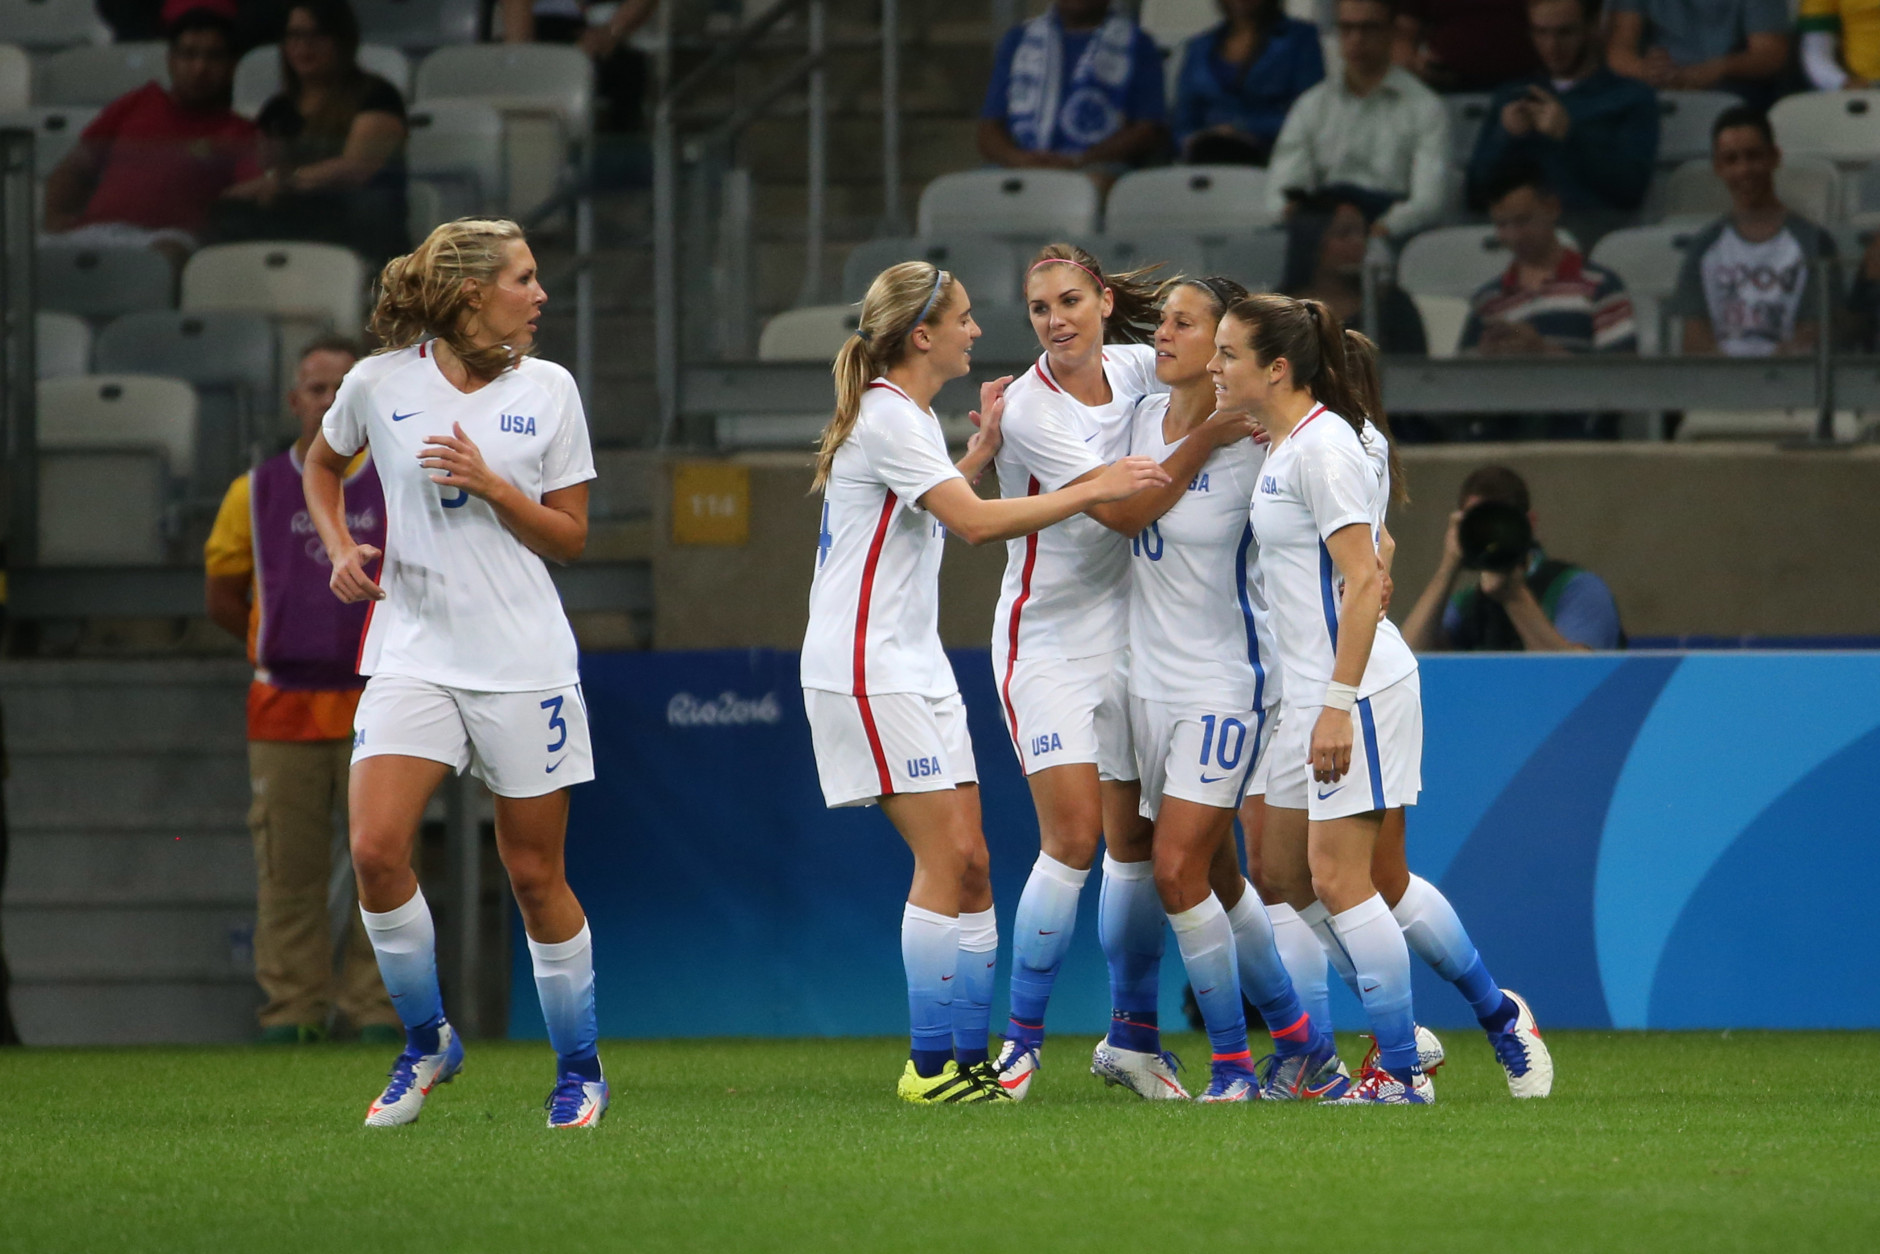 United States' players celebrates after their teammate Carli Lloyd, second right, scored against New Zealand during a Women's Olympic Football Tournament match at the Mineirao stadium in Belo Horizonte, Brazil, Wednesday, Aug. 3, 2016. (AP Photo/Eugenio Savio)